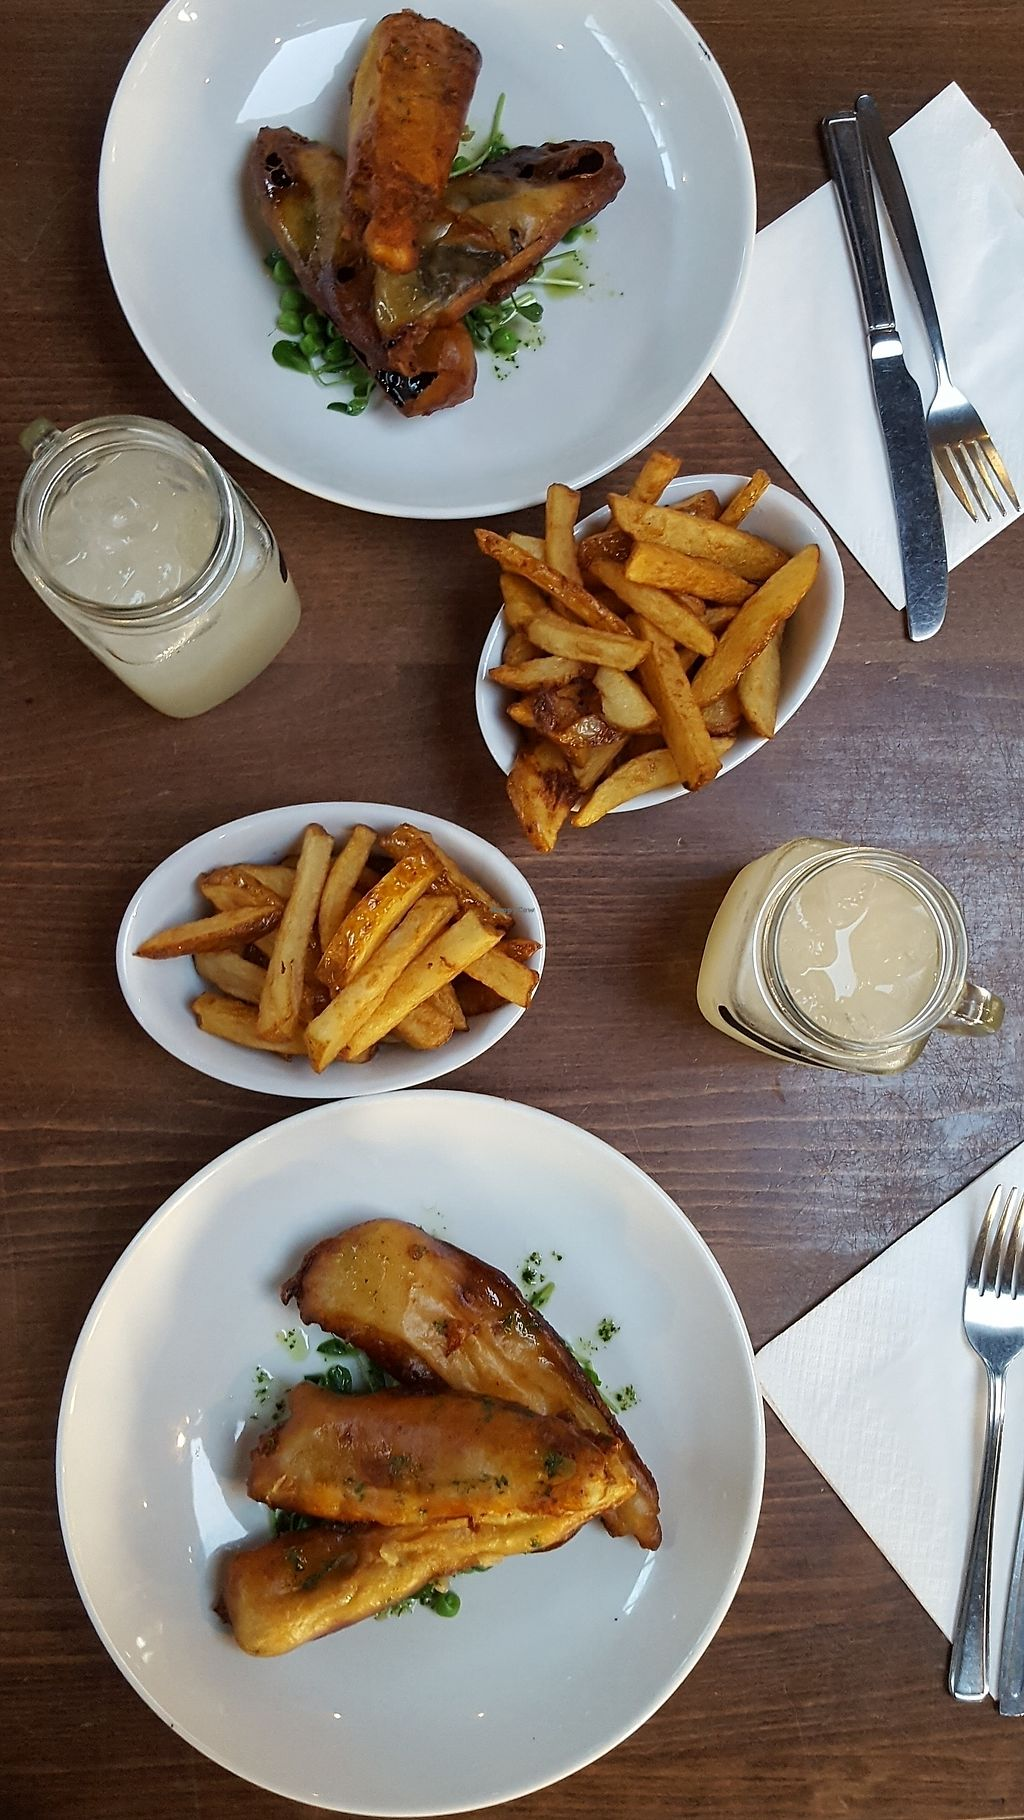 """Photo of Cantina  by <a href=""""/members/profile/VeganAnnaS"""">VeganAnnaS</a> <br/>Vegan 'fish' and chips  <br/> January 4, 2018  - <a href='/contact/abuse/image/98995/343029'>Report</a>"""